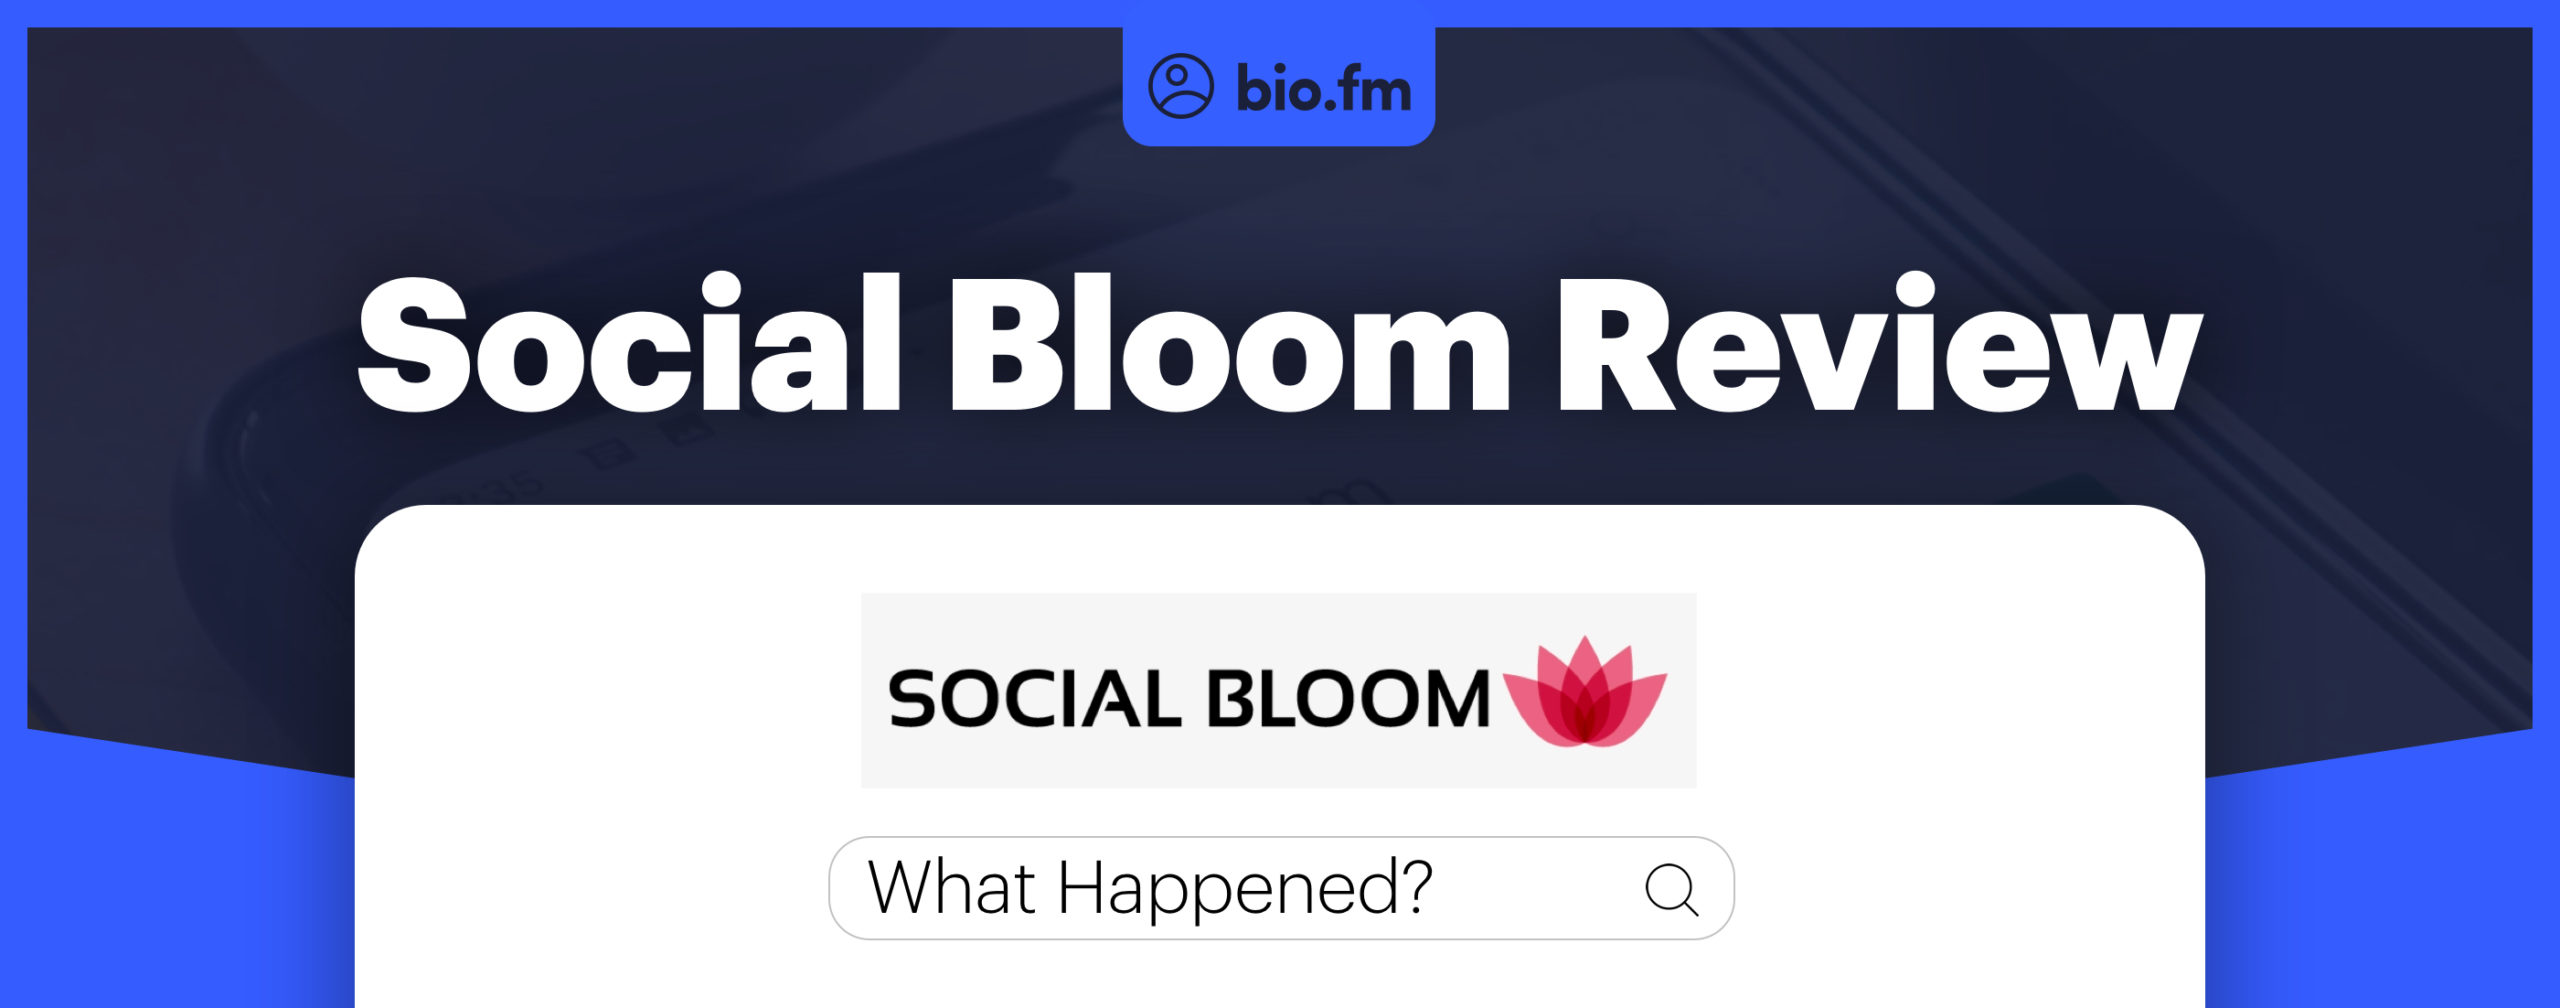 socialbloom review featured image